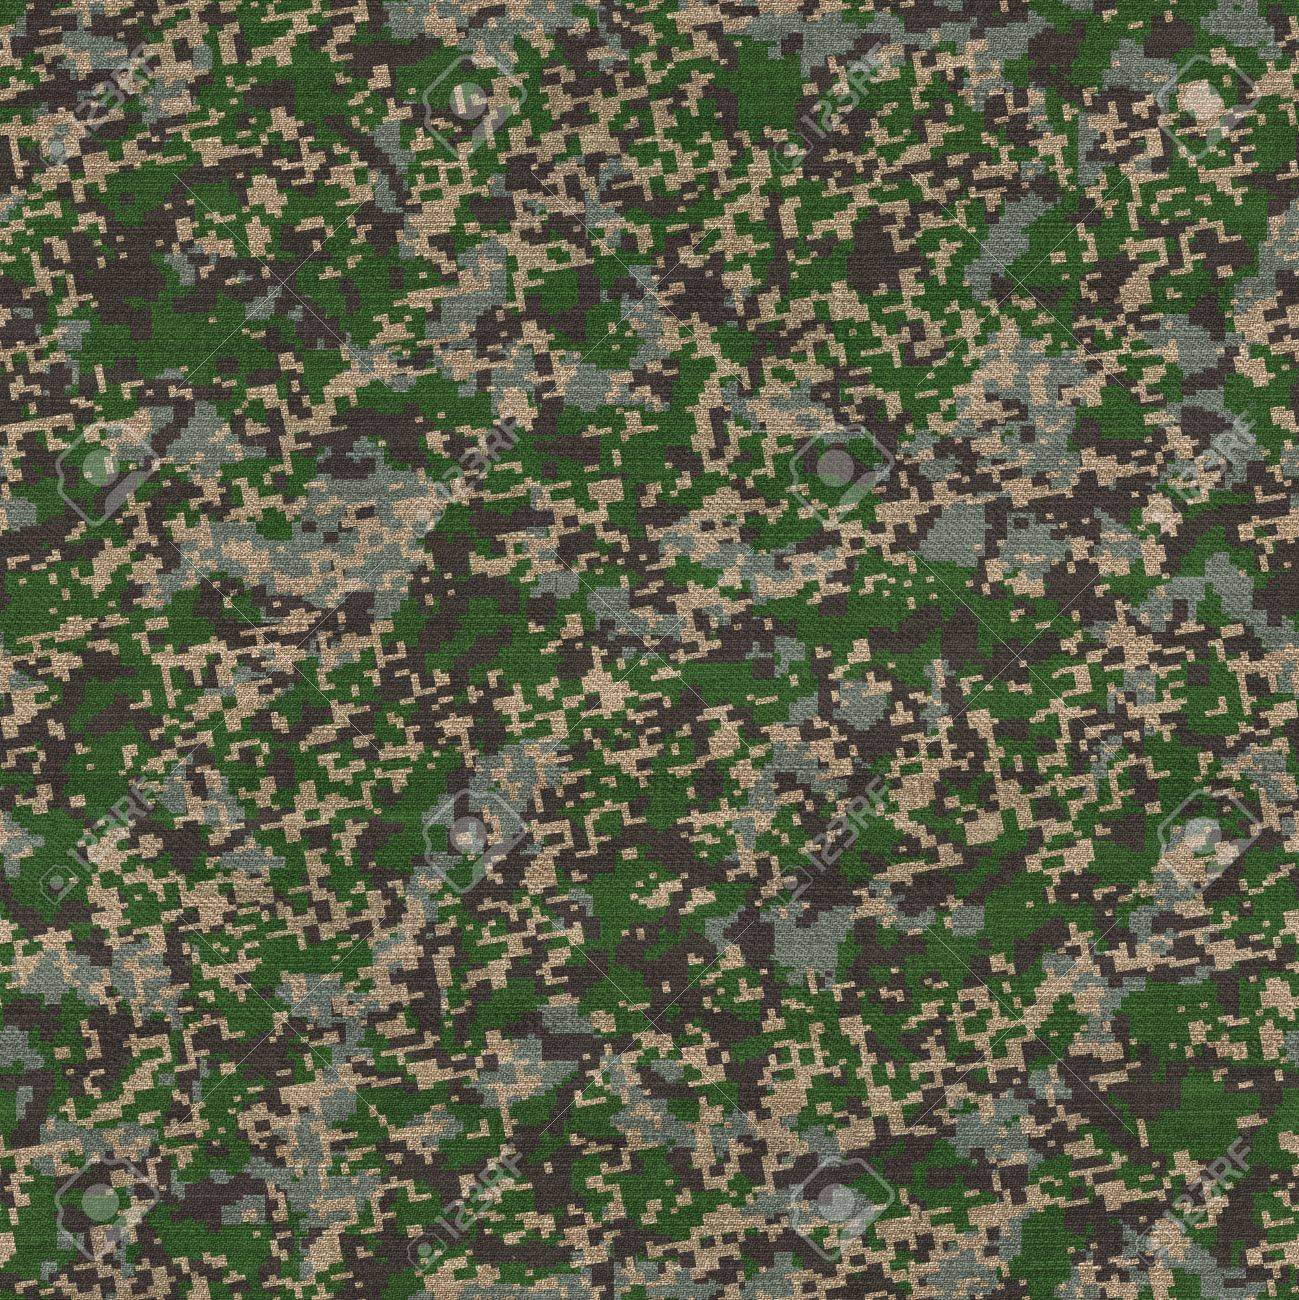 Detailed Camouflage Pattern Fabric  Seamless Tileable Texture Stock Photo - 19665876